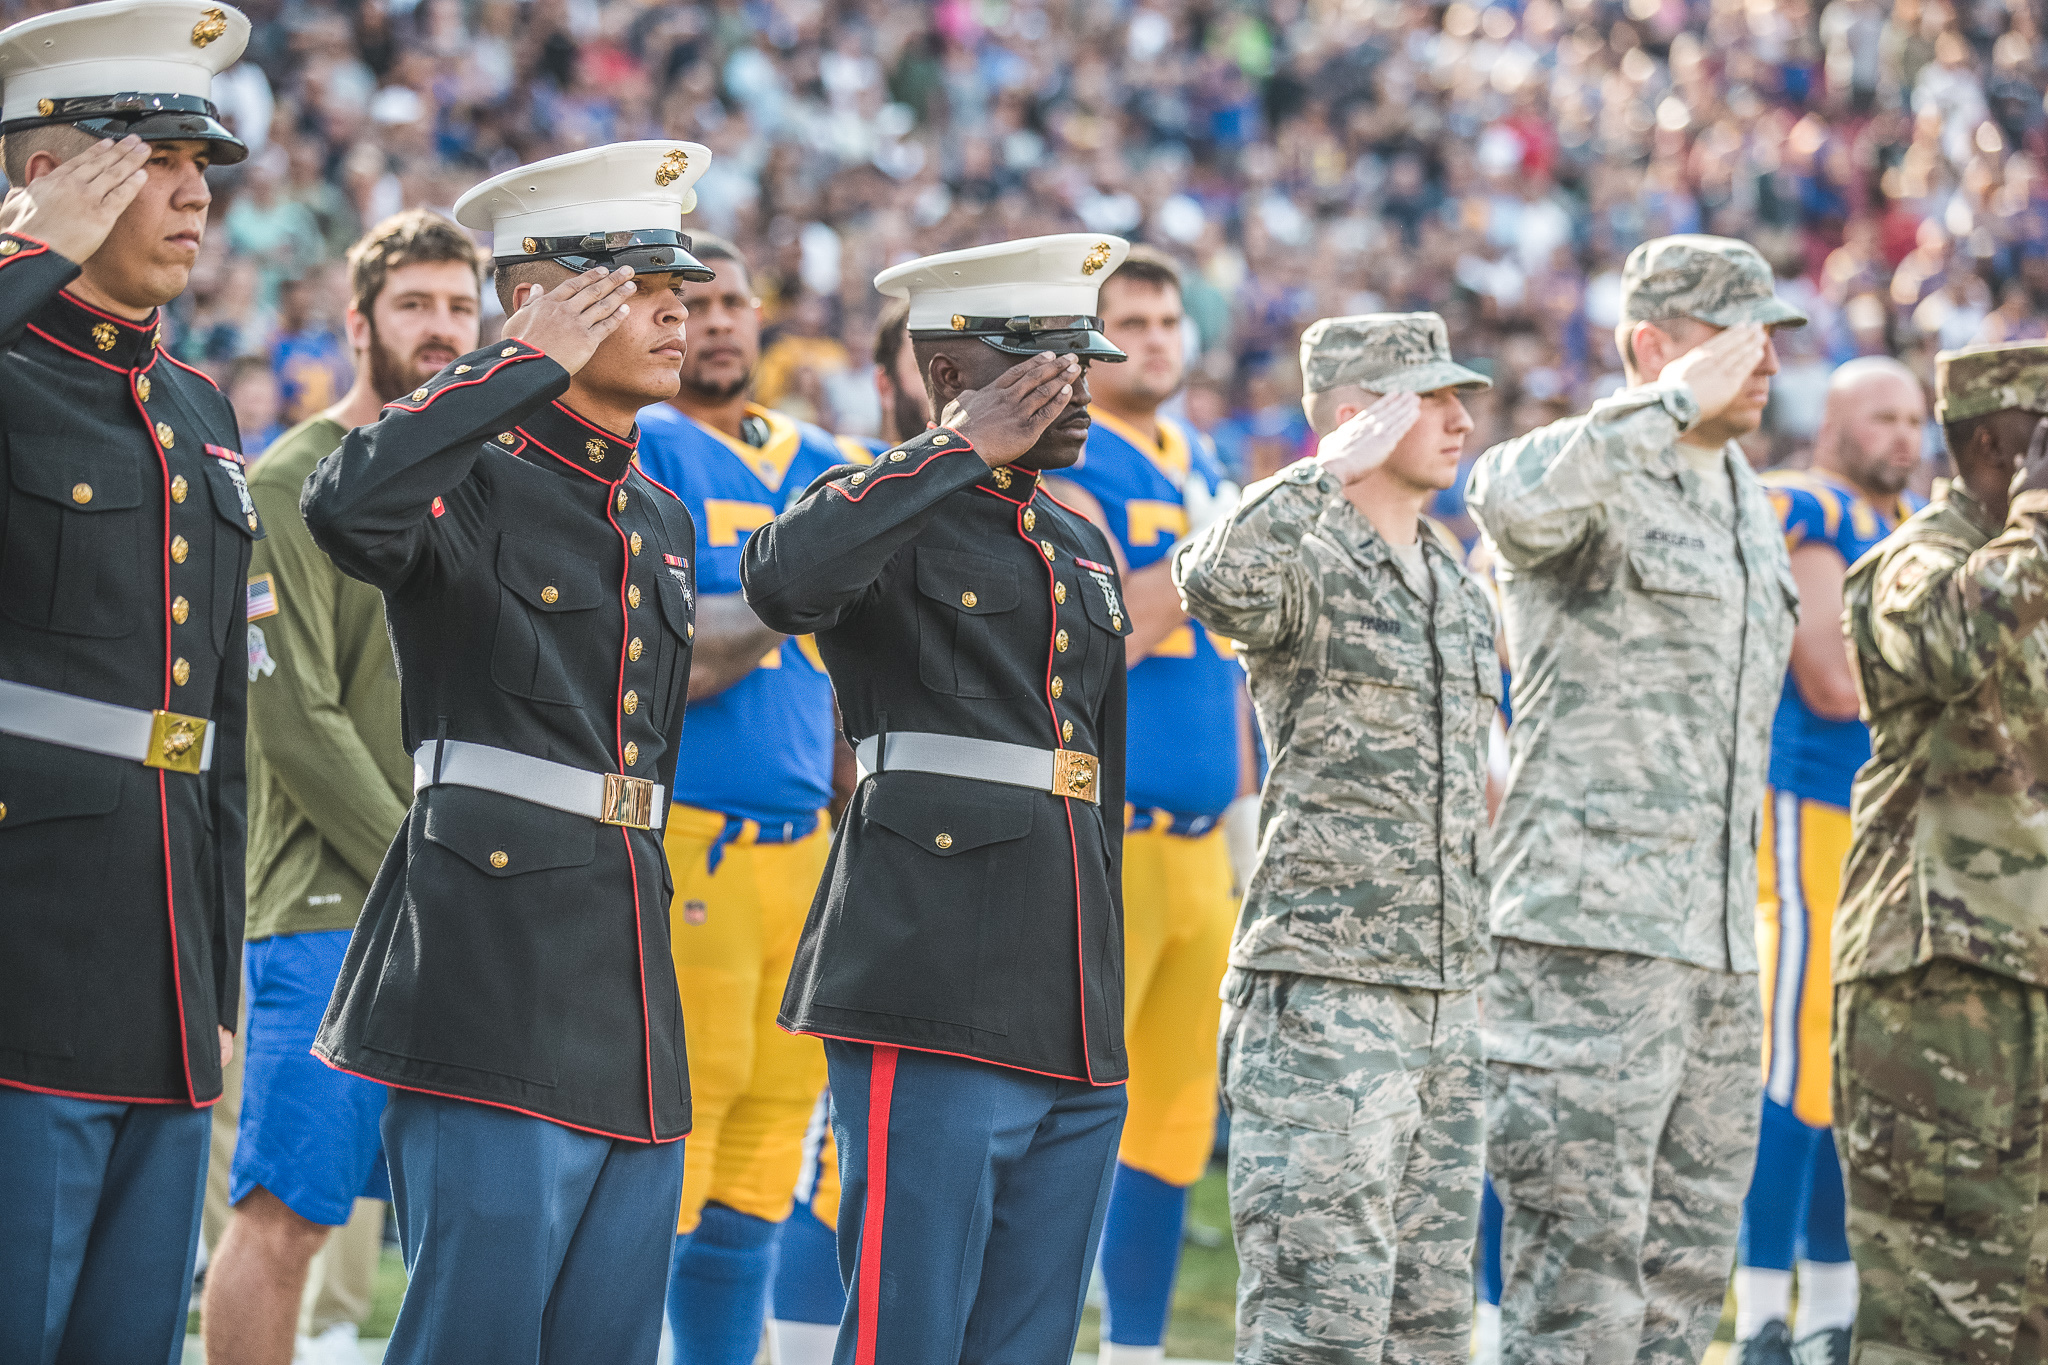 Re-Enlistment Oath Ceremony at the Los Angeles Memorial Coliseum